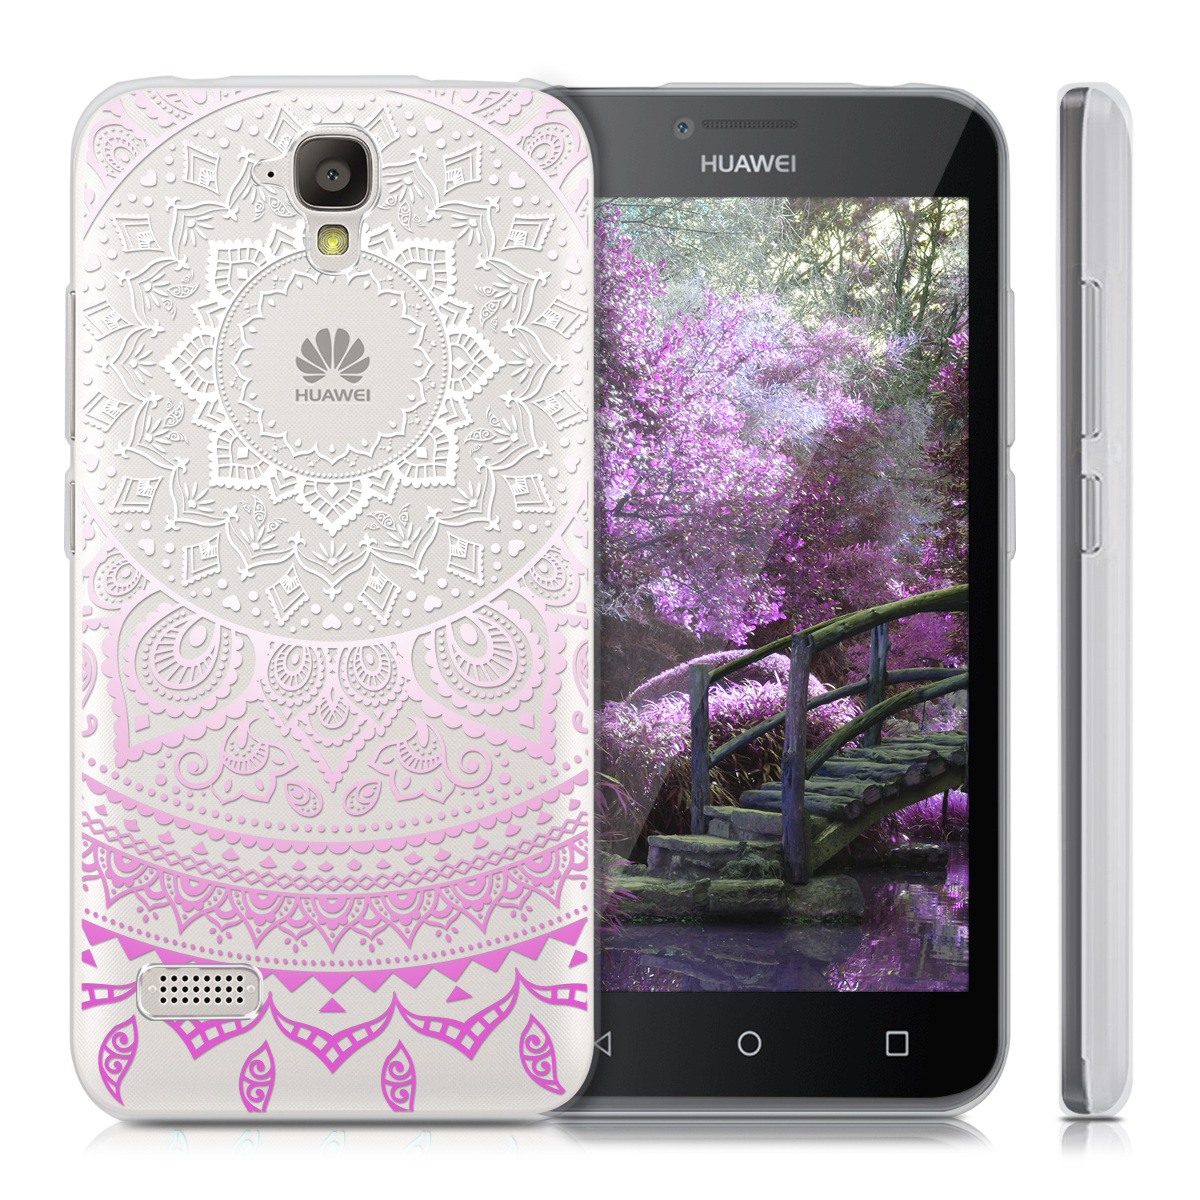 kwmobile-HOUSSE-DE-PROTECTION-POUR-HUAWEI-Y5-TPU-SILICONE-ETUI-PROTEGE-CHOCS